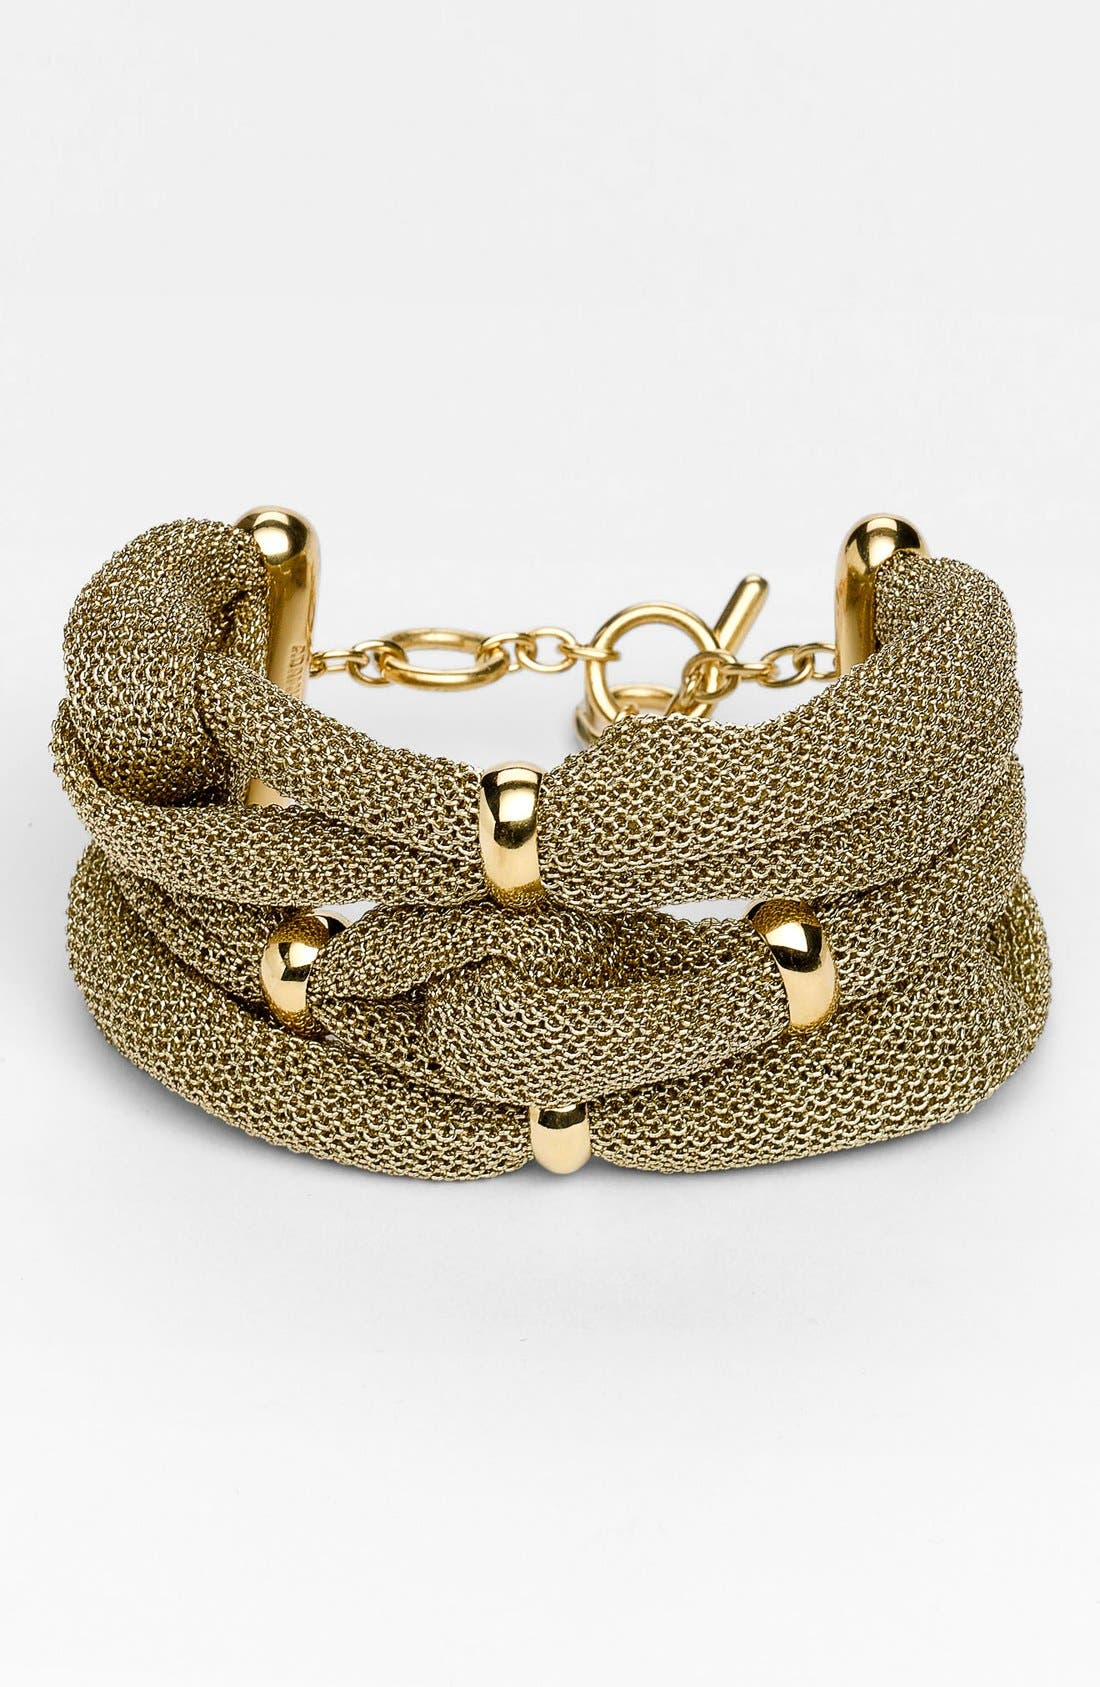 Alternate Image 1 Selected - Adami & Martucci 'Mesh' Line Bracelet (Nordstrom Exclusive)